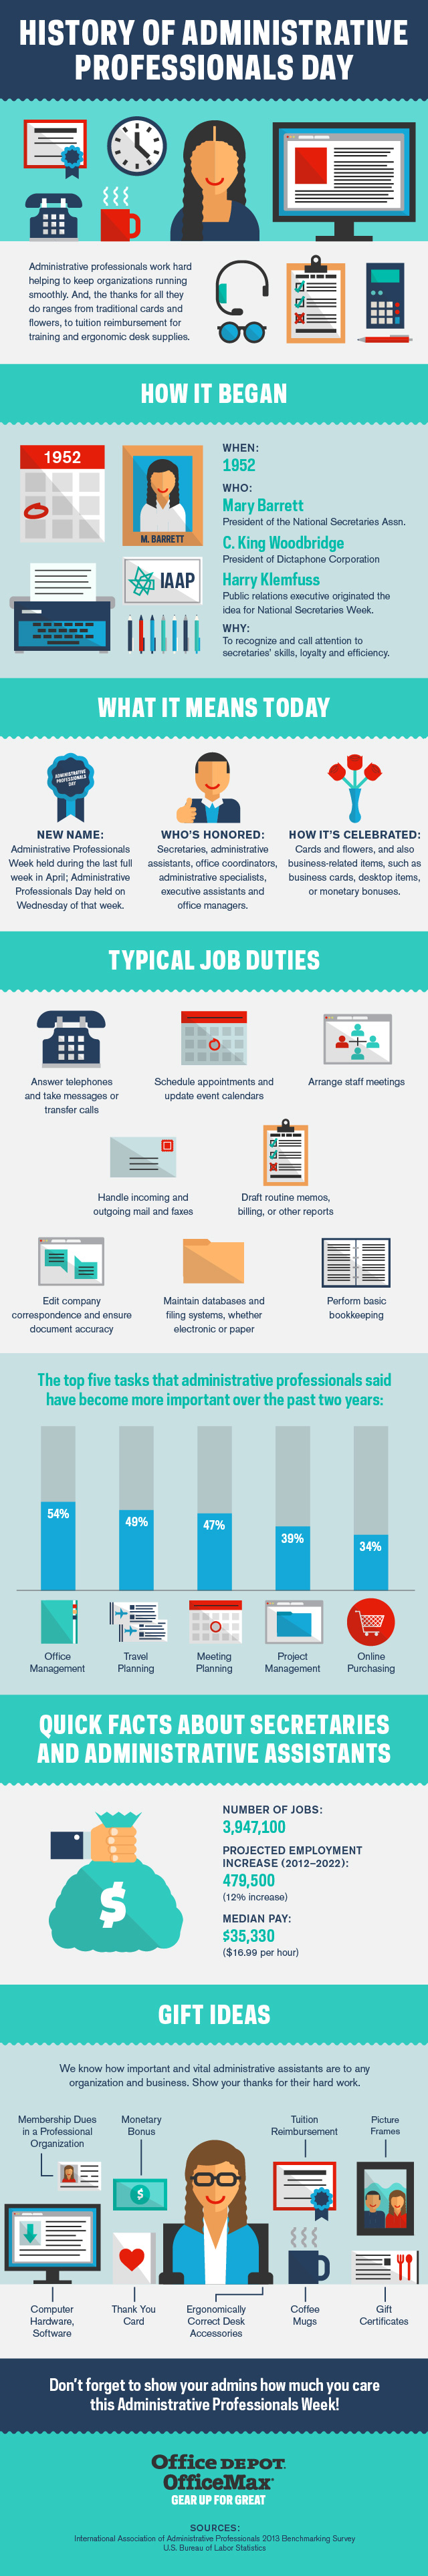 History of Administrative Professionals Day Infographic